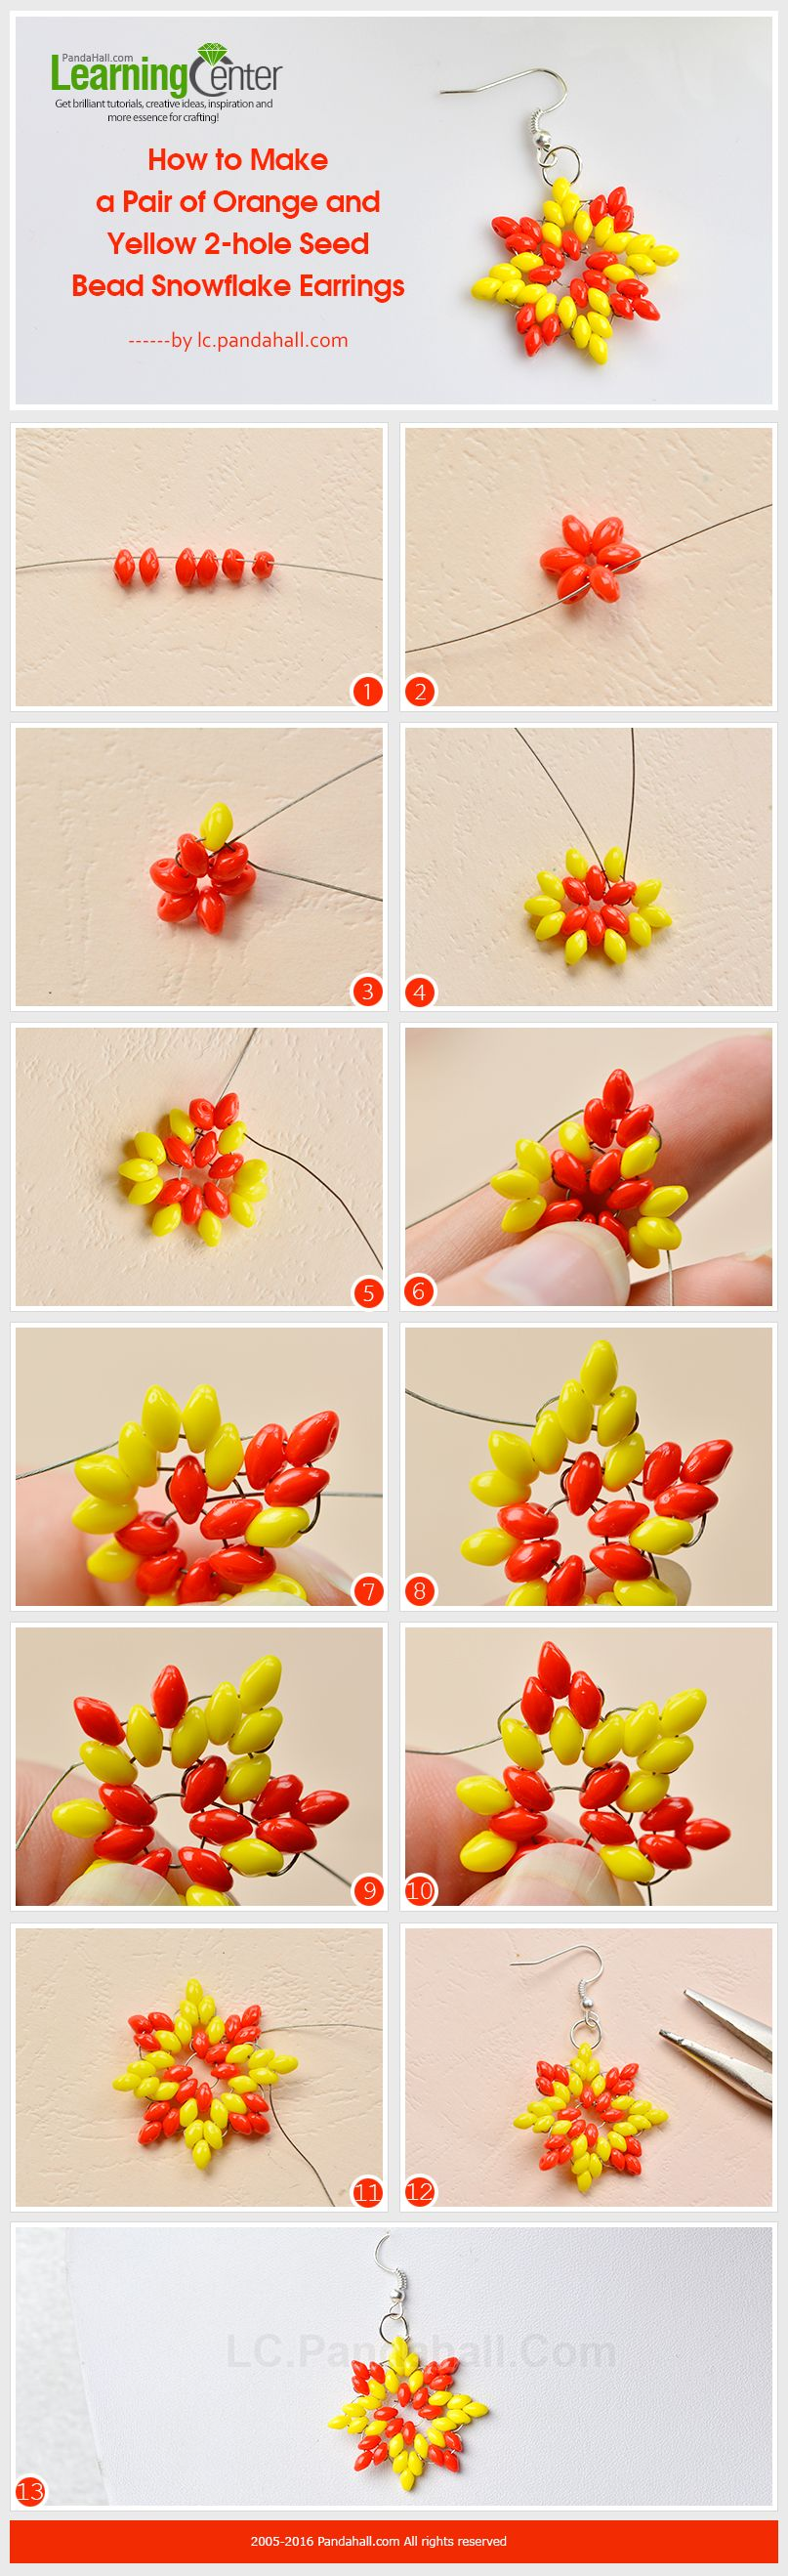 How to Make a Pair of Orange and Yellow 2-hole Seed Bead Snowflake Earrings from LC.Pandahall.com